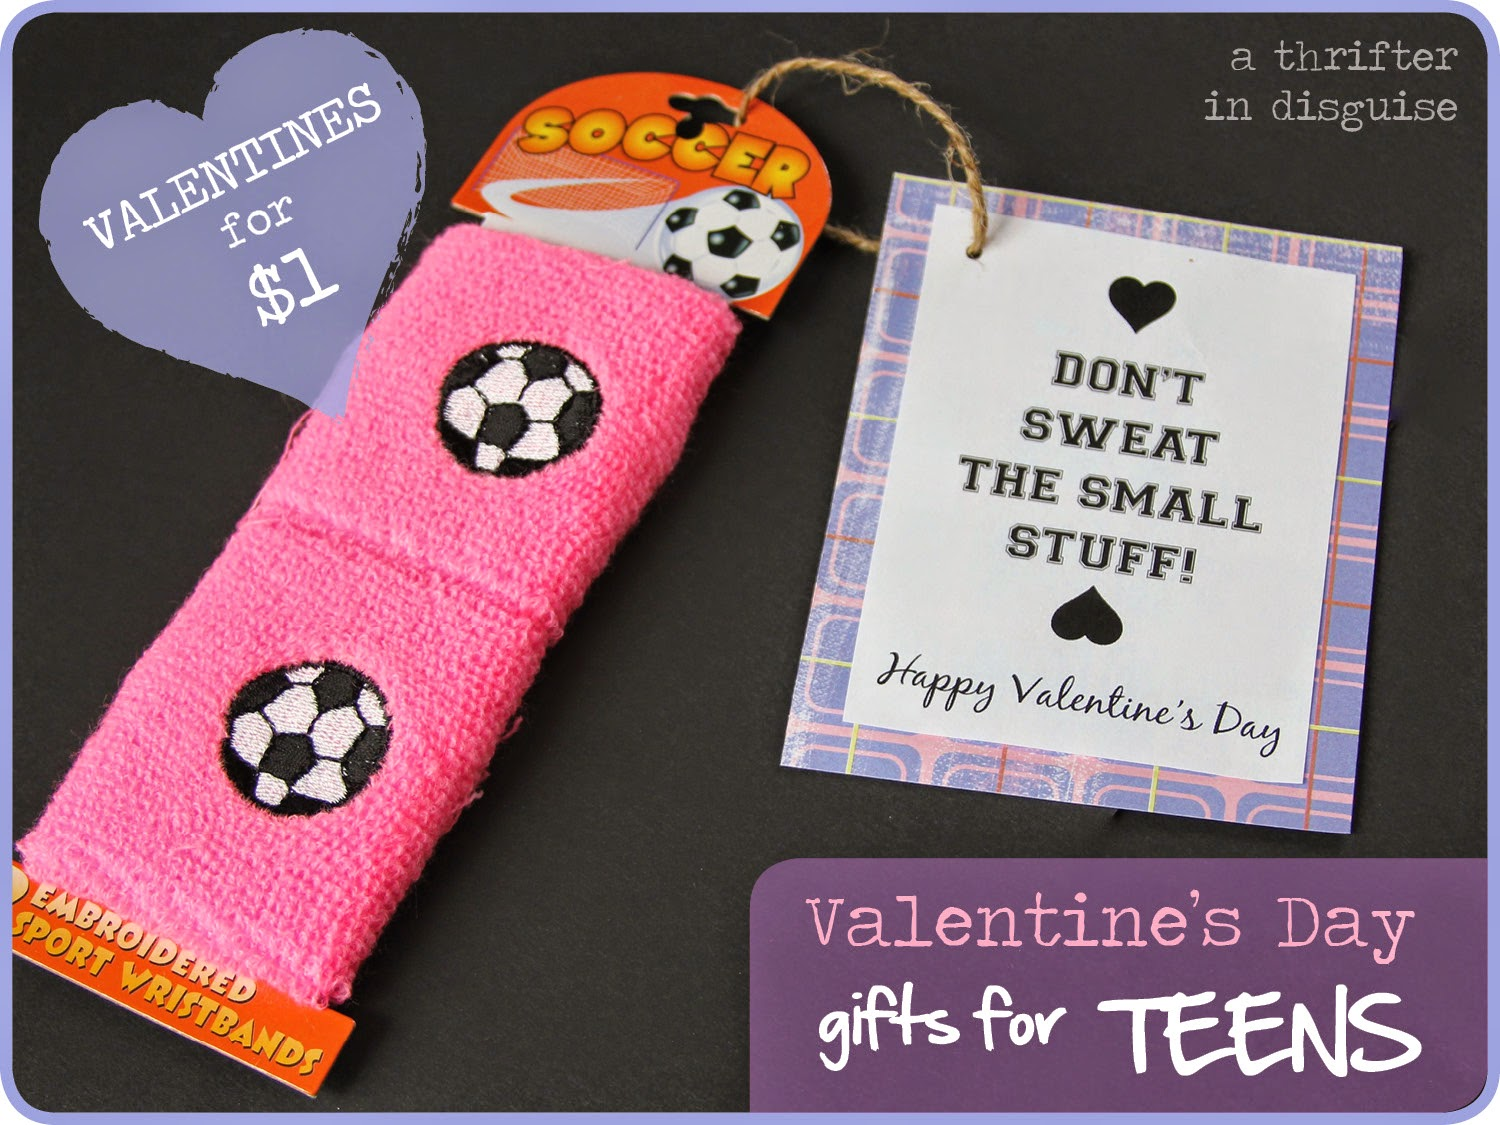 Sports gifts for teens